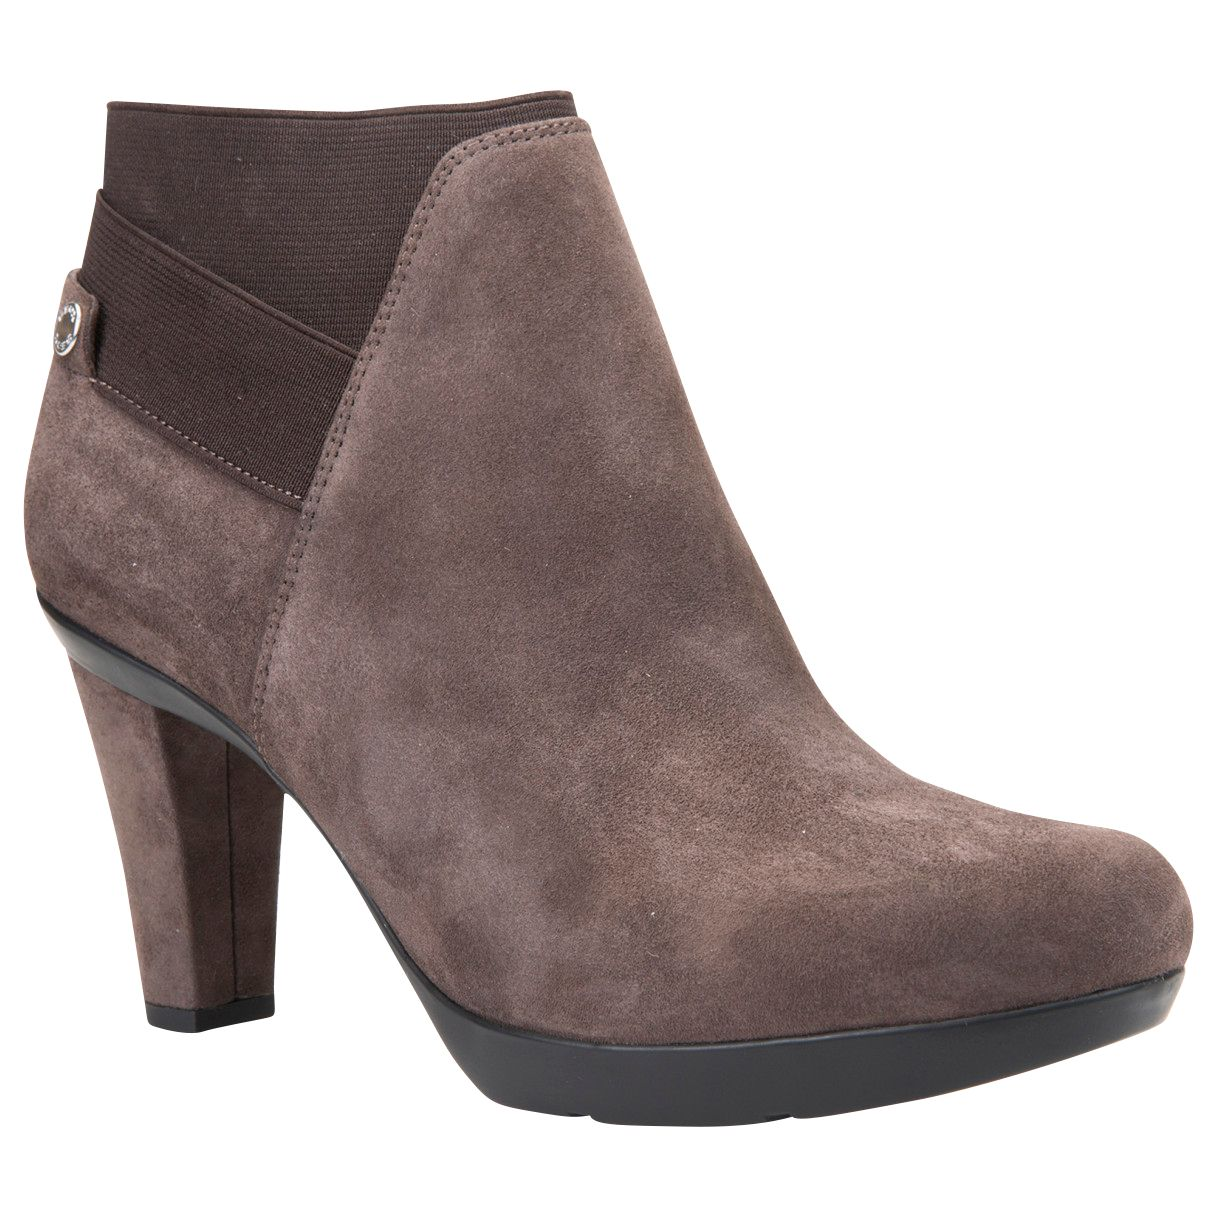 Geox Geox Inspiration High Cone Heel Ankle Boots